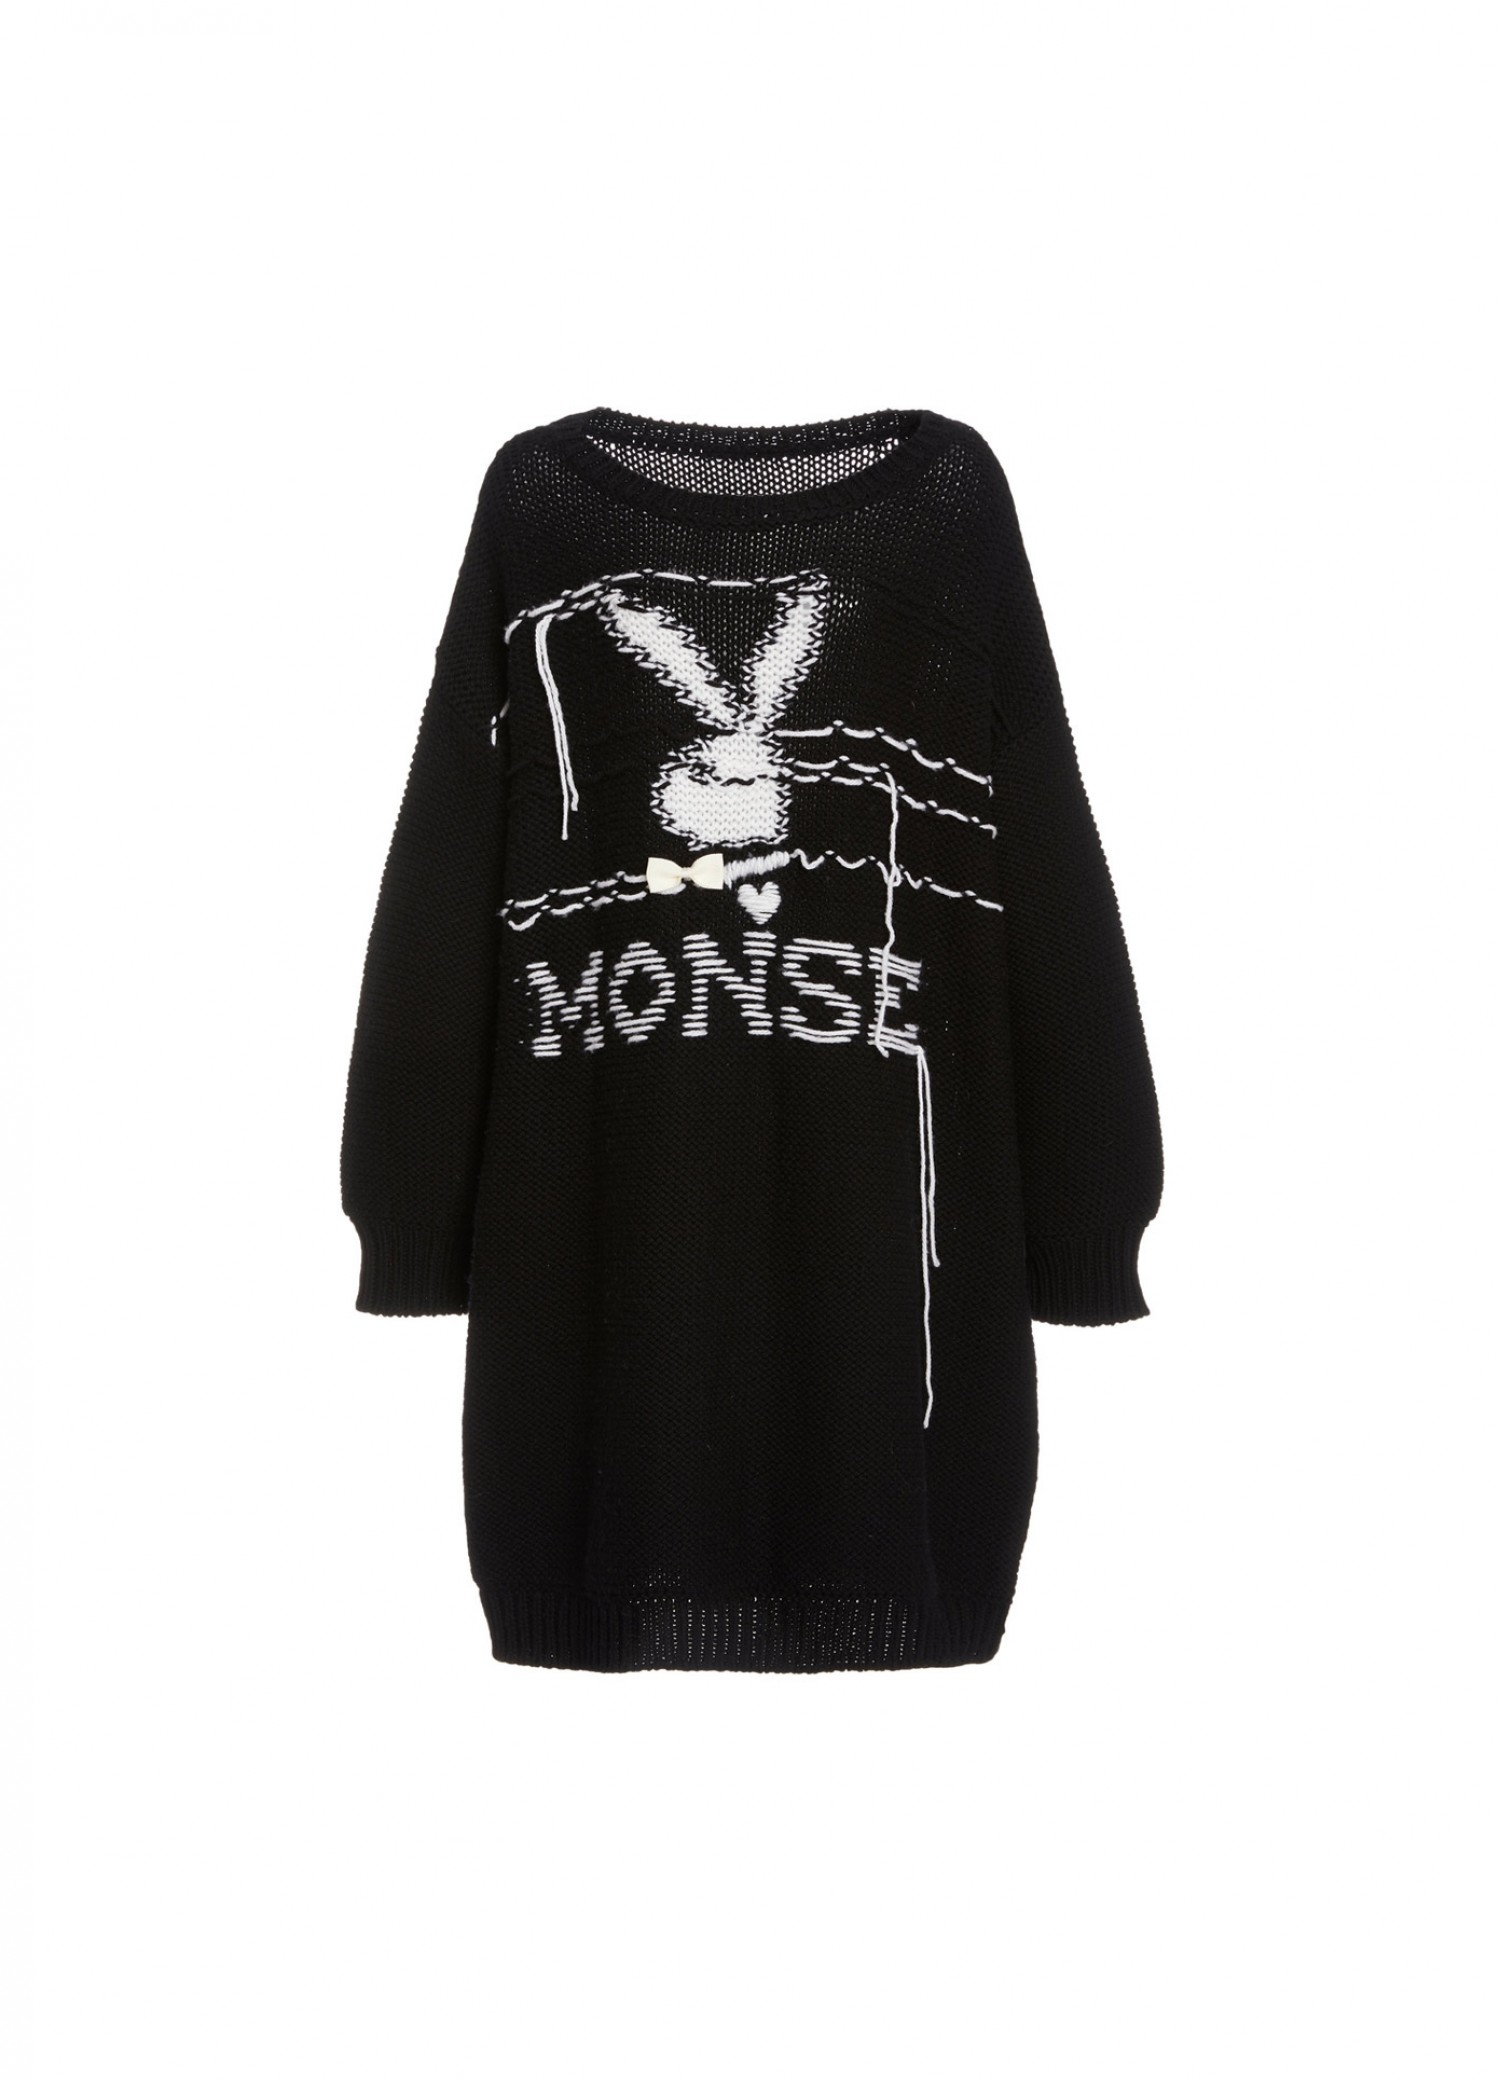 Playboy X MONSE Oversized Knit Dress in Black Front View